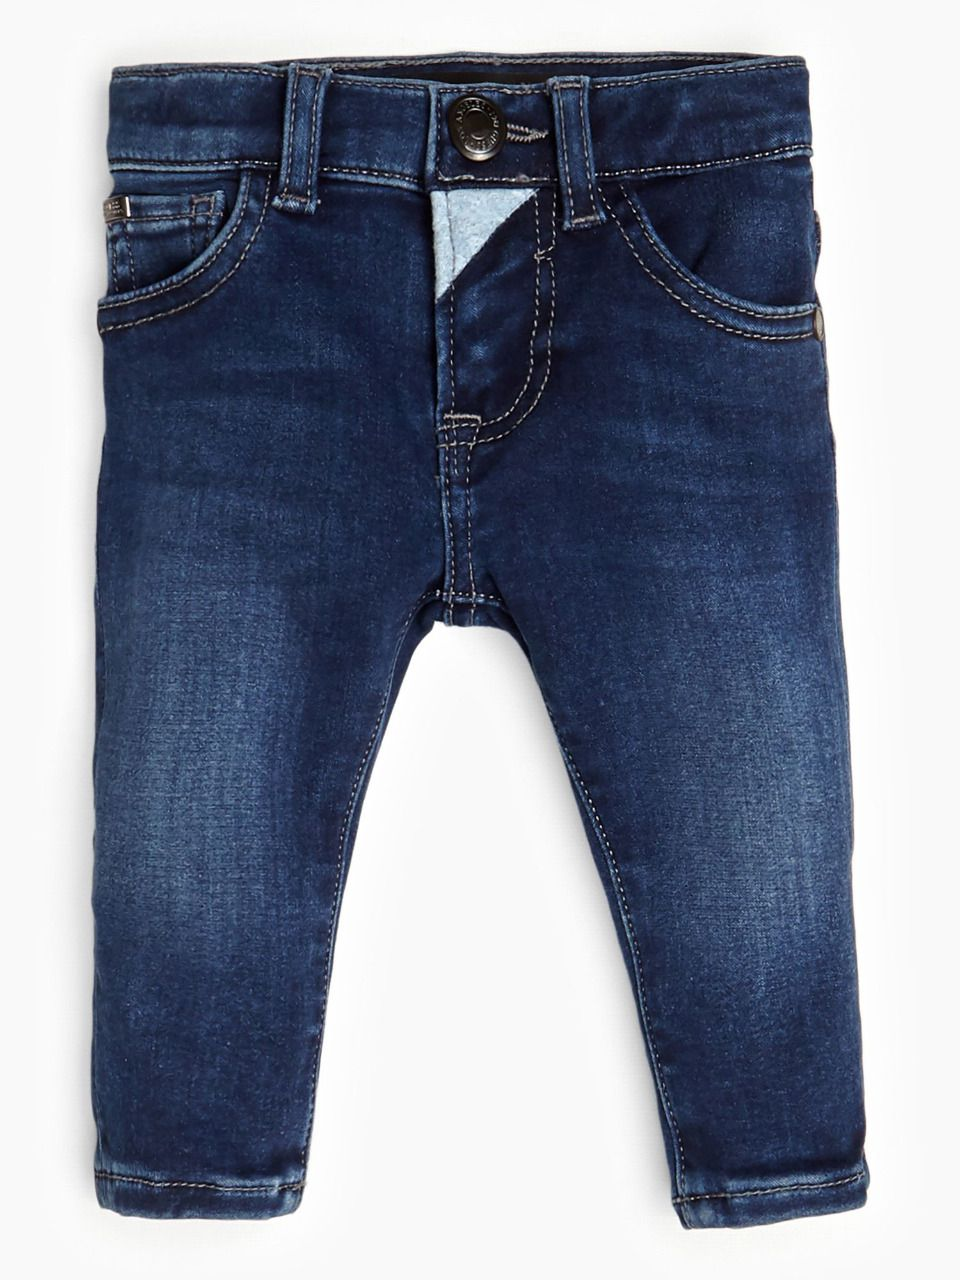 GUESS KIDS jeans skinny modele 5 poches